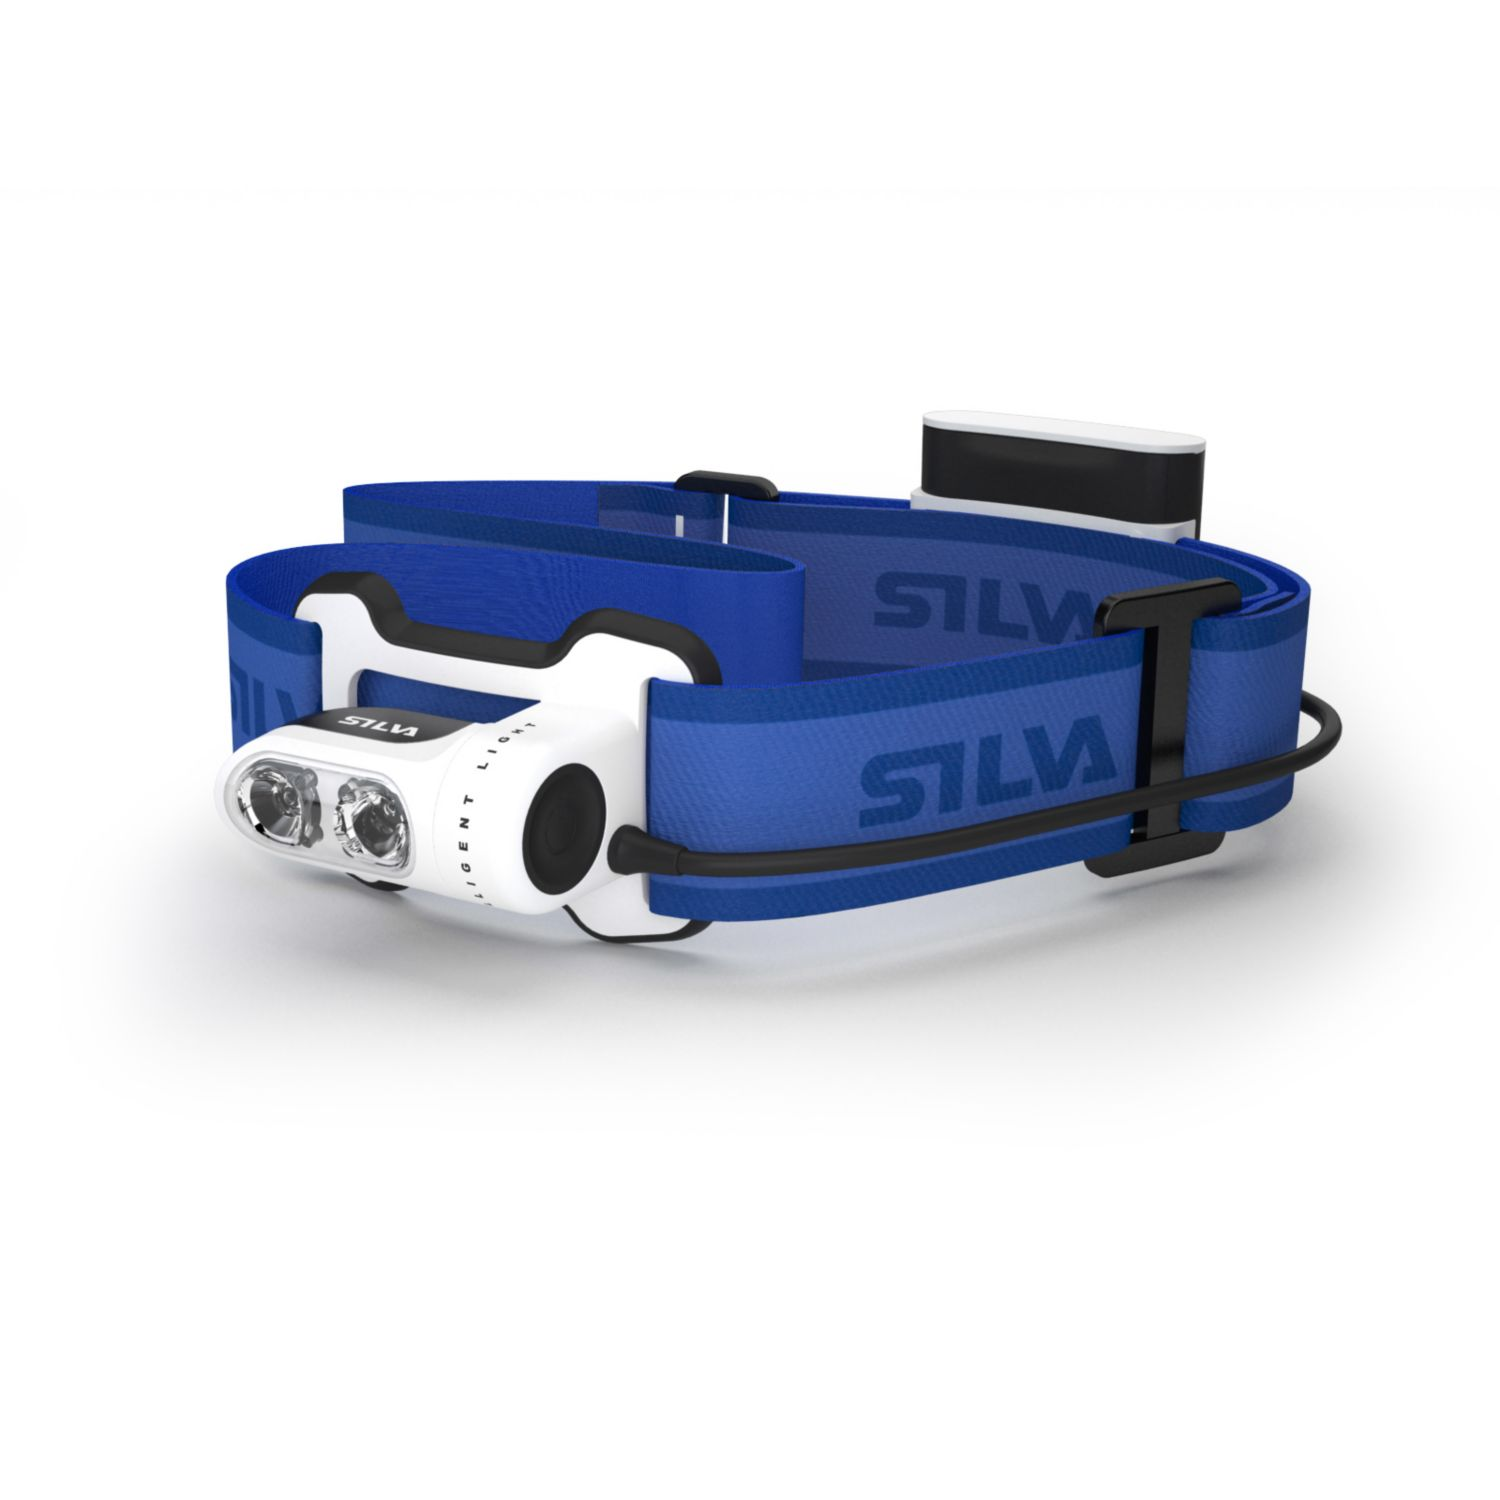 Silva Run Headtorch